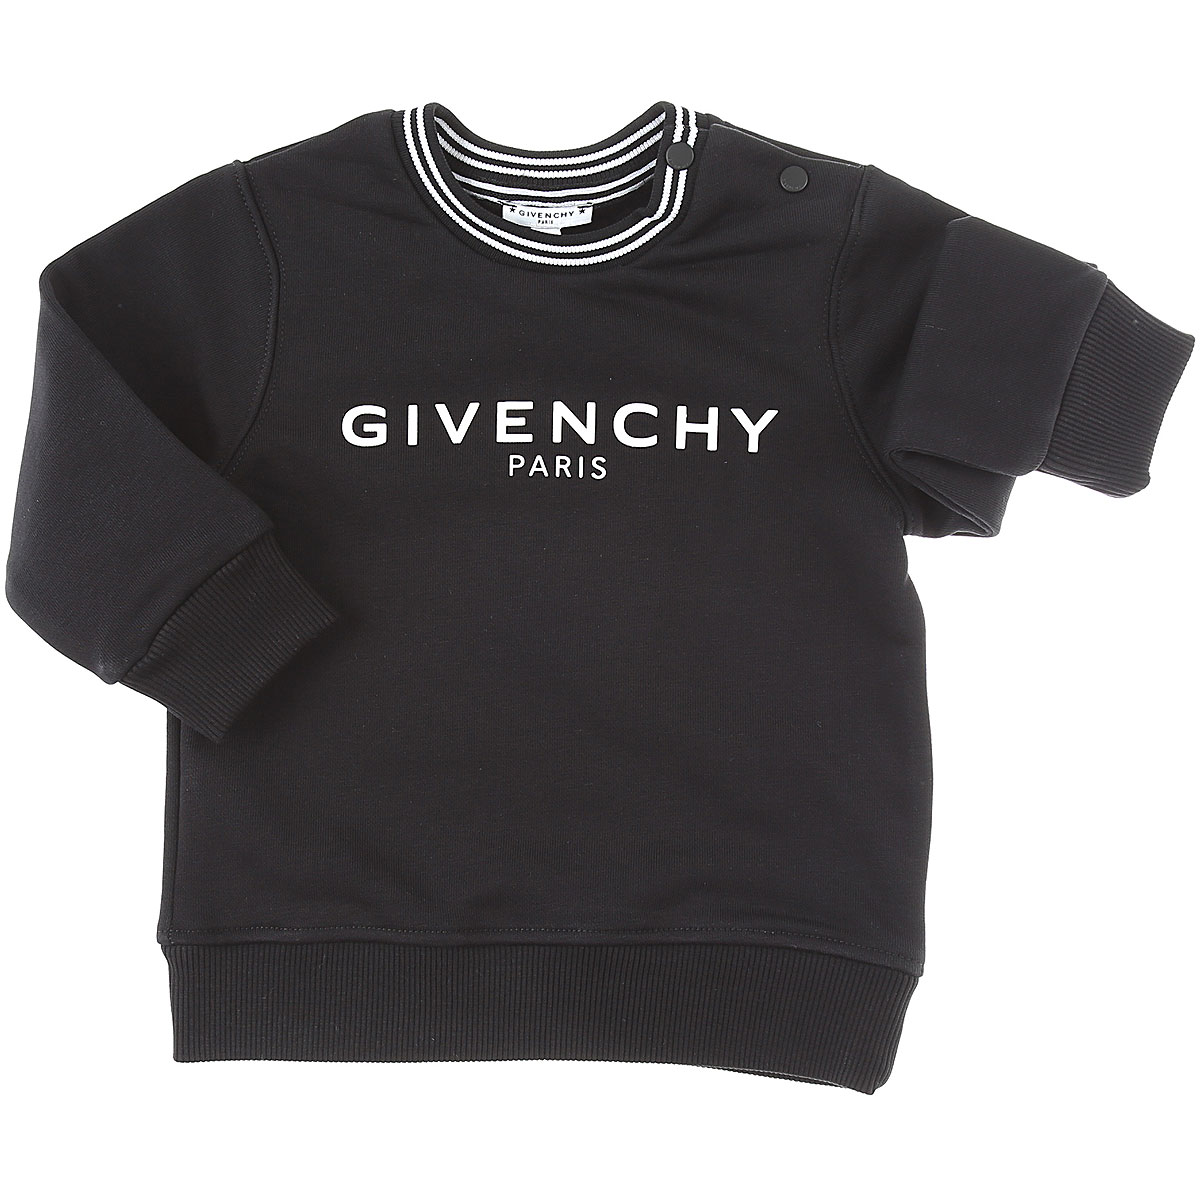 Givenchy Baby Sweatshirts & Hoodies for Boys On Sale, Black, Cotton, 2019, 12 M 18M 3Y 9M